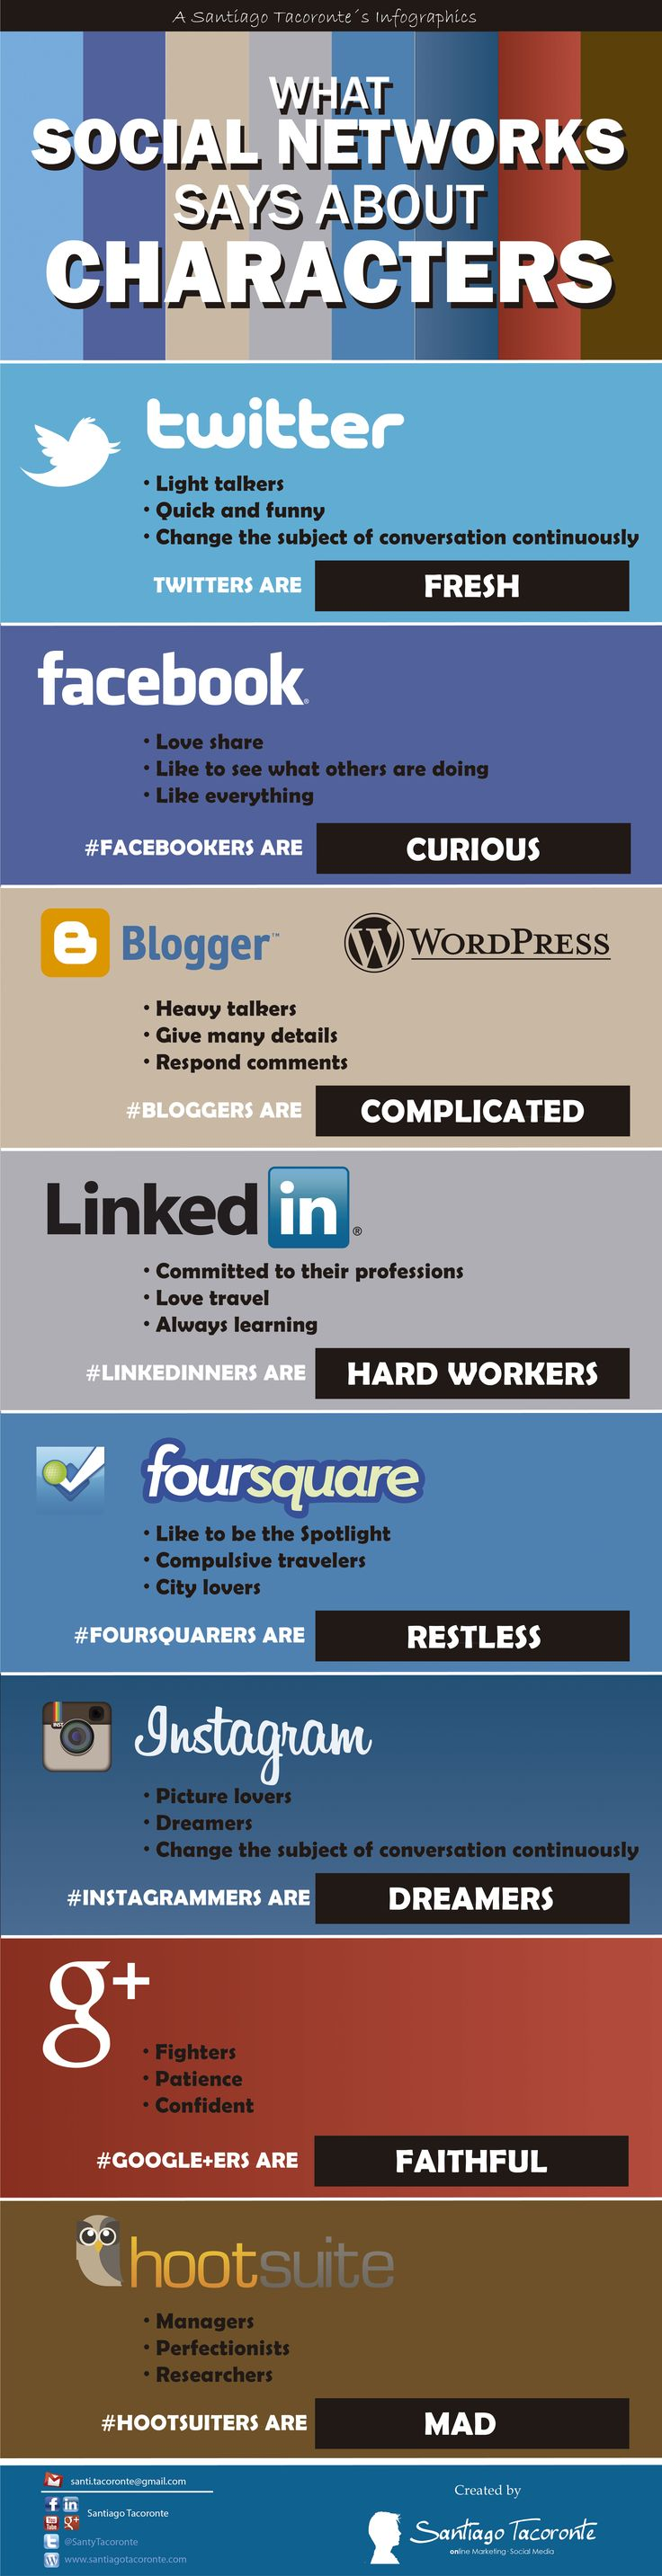 Infographics of social network charactersRed Social, Infographic Socialmedia, Socialnetwork, Social Media, Digo Cómo, Cómo Eres, Social Networks, Business Marketing, Dimes Tu